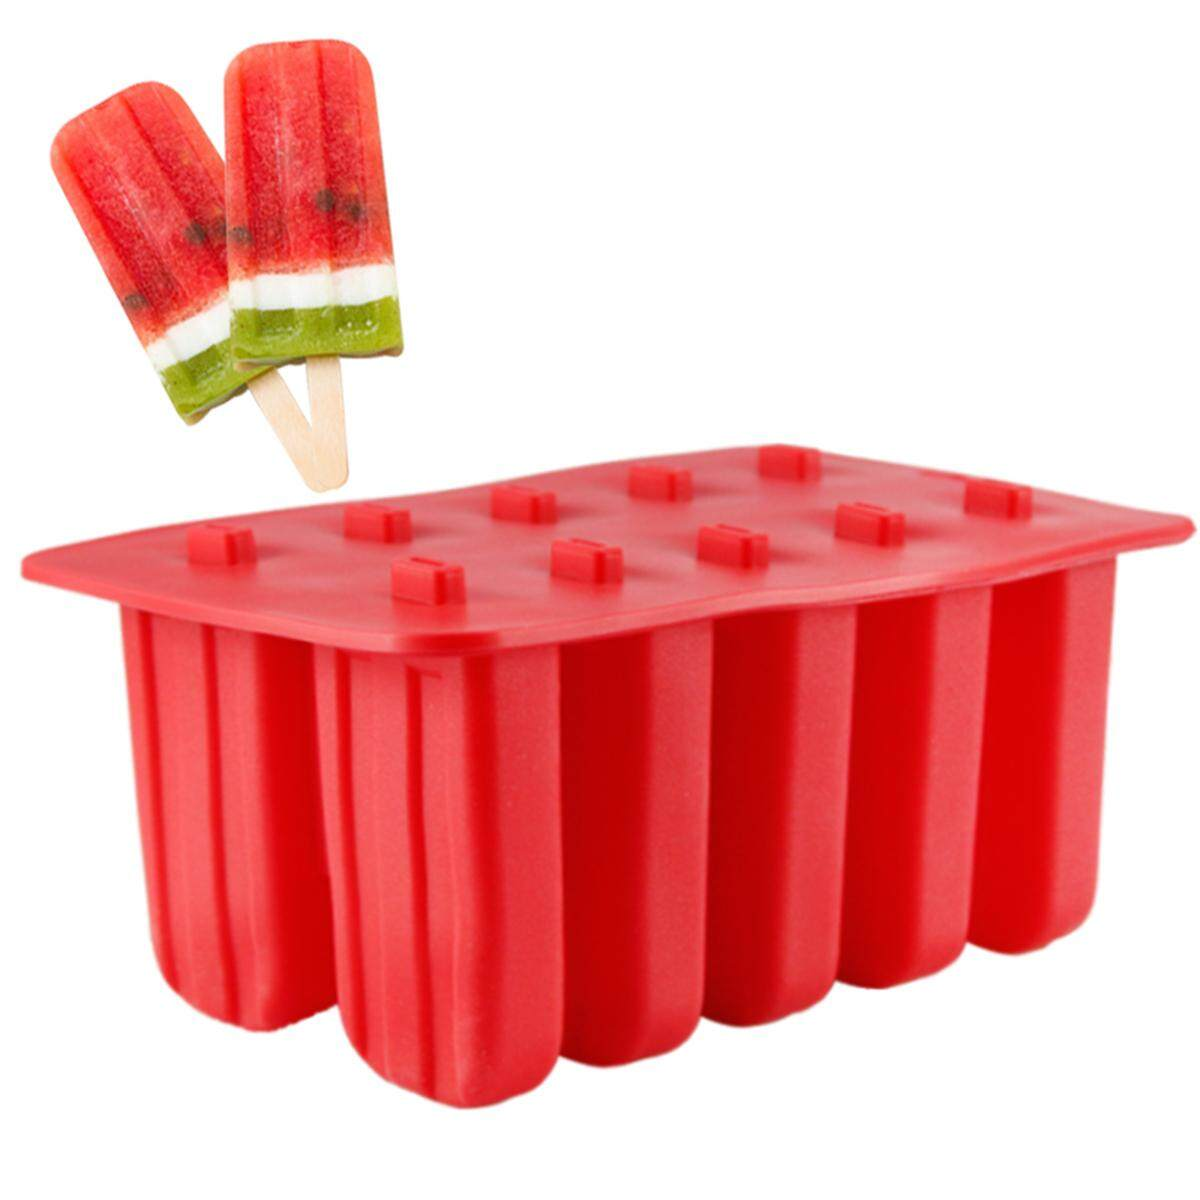 Buy Sell Cheapest Ice Cream Maker Best Quality Product Deals Mainan Anak Frozen Pembuat Set Of 10 Pop Mold Lolly Mould Tray Pan Kitchen Diy Stick